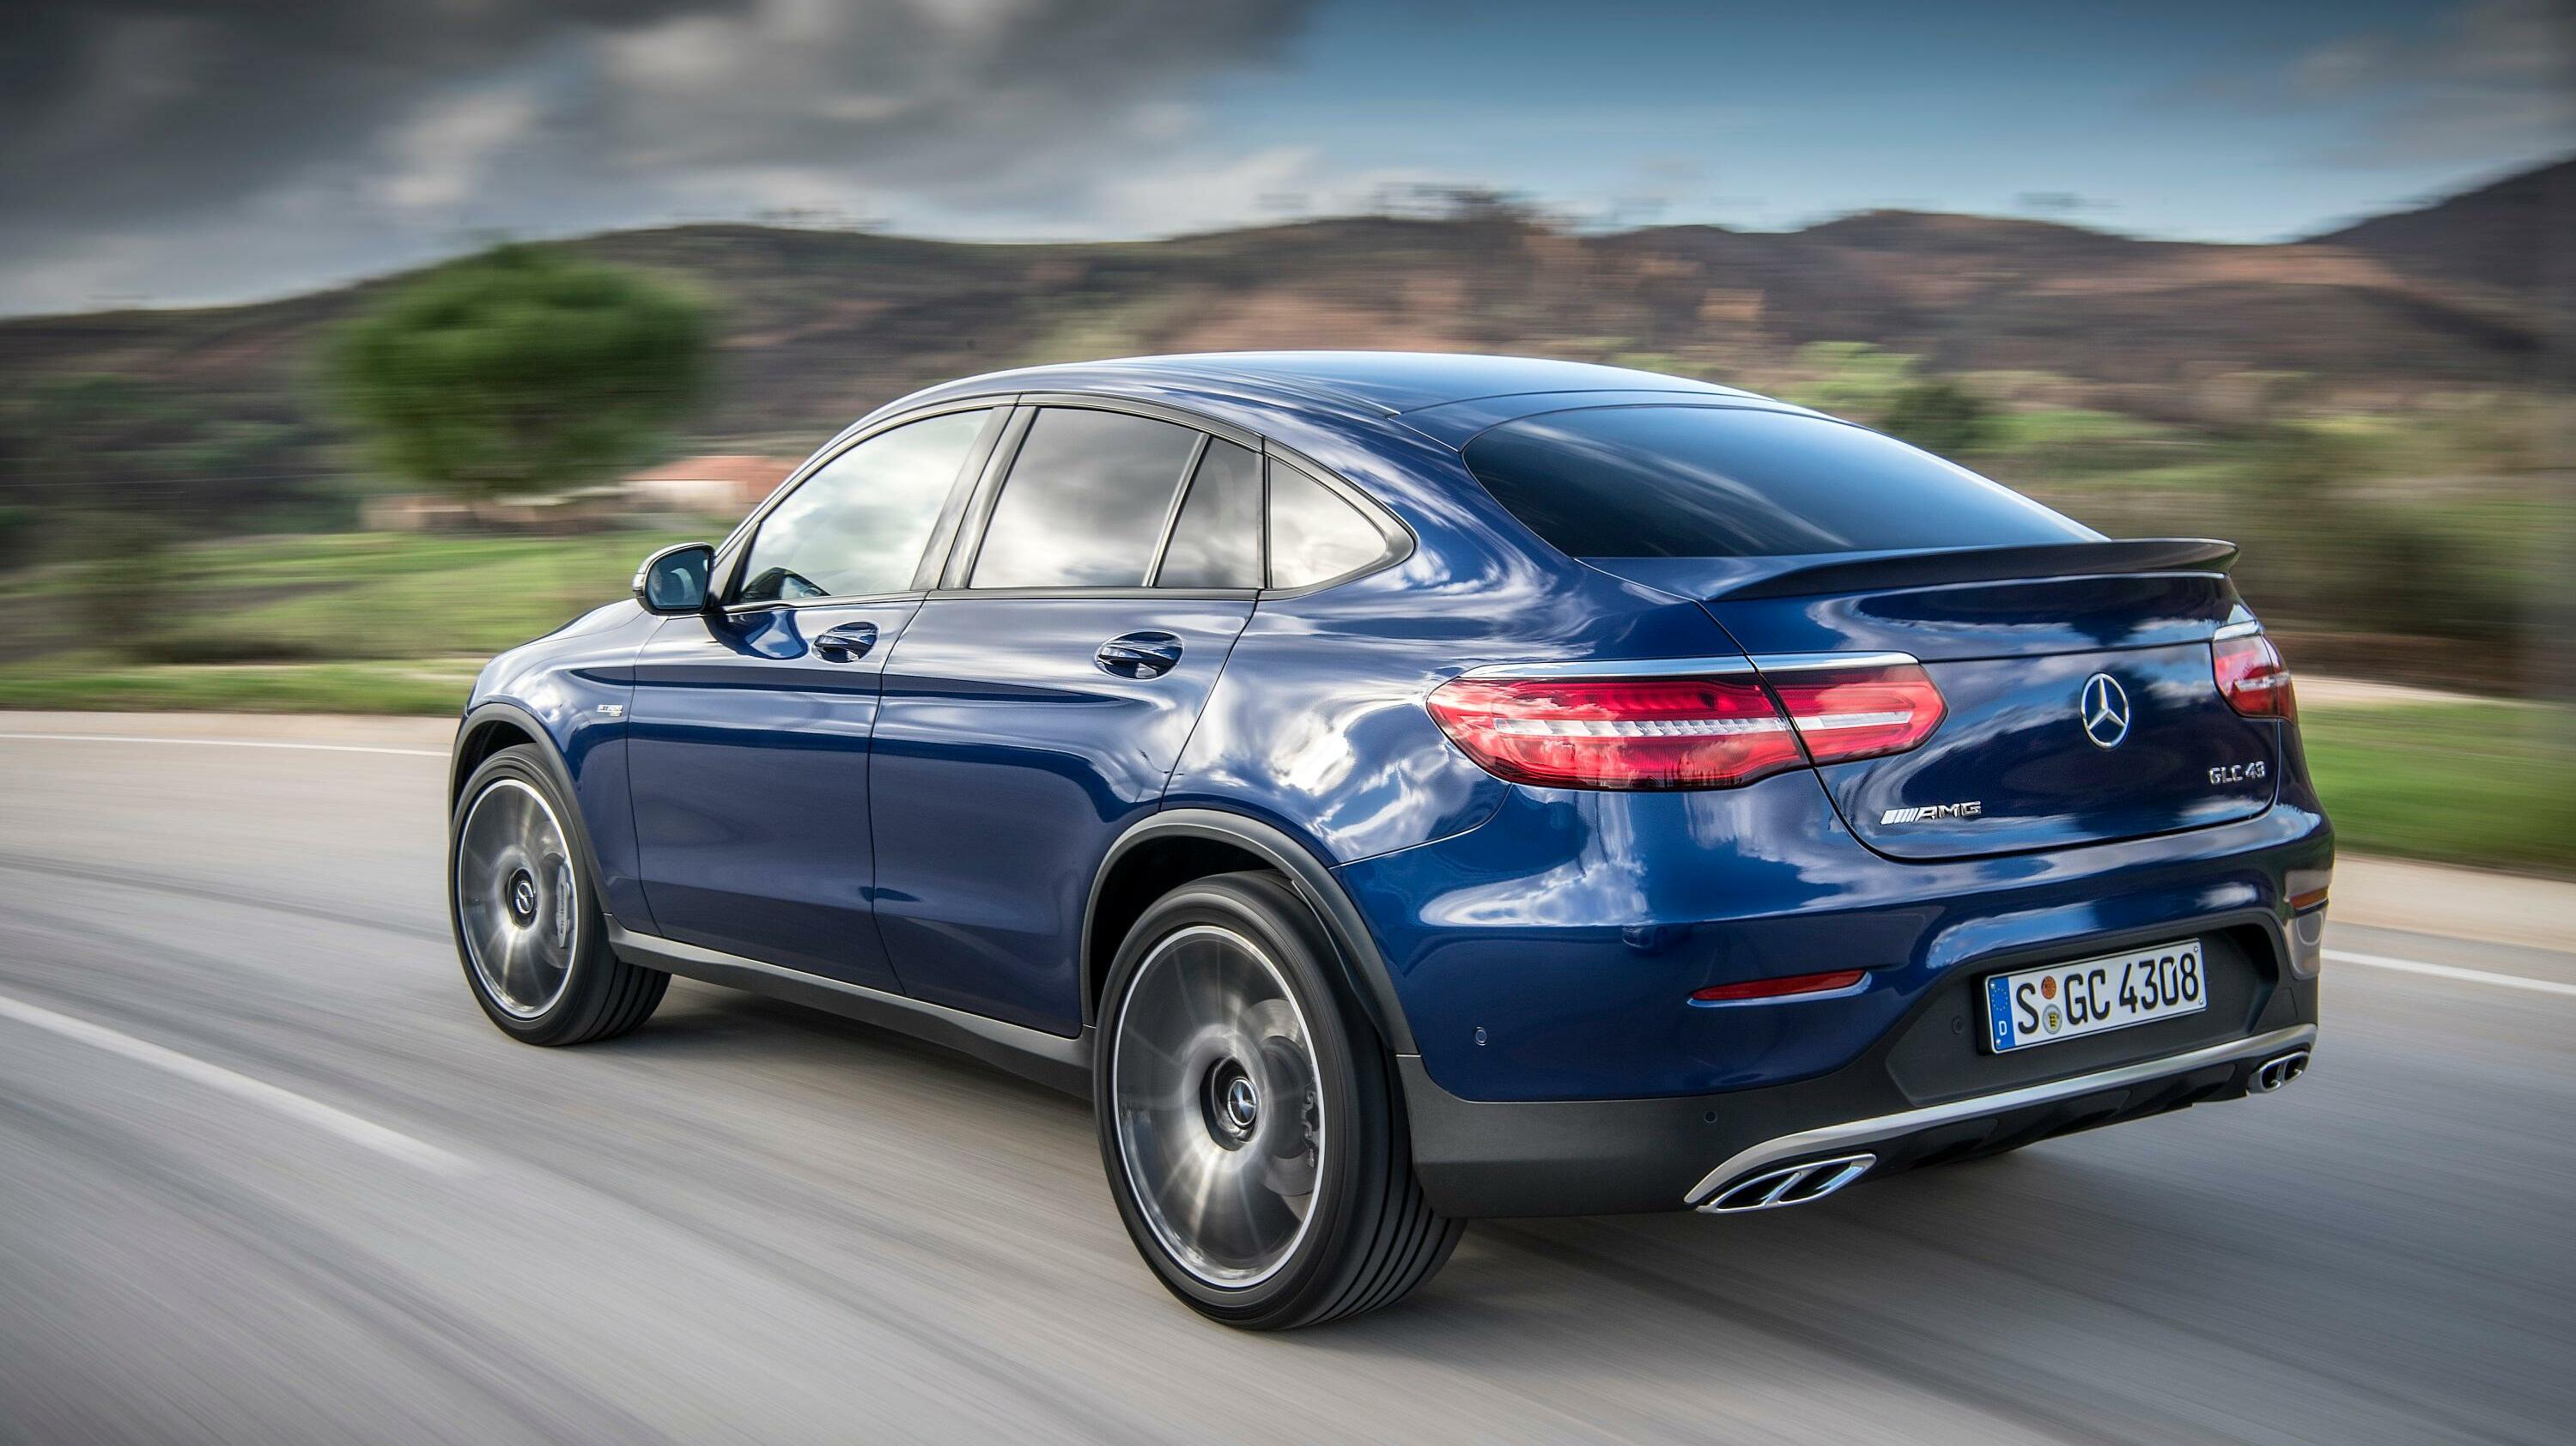 Mercedes-AMG GLC 43 Coupé Quelle: Daimler